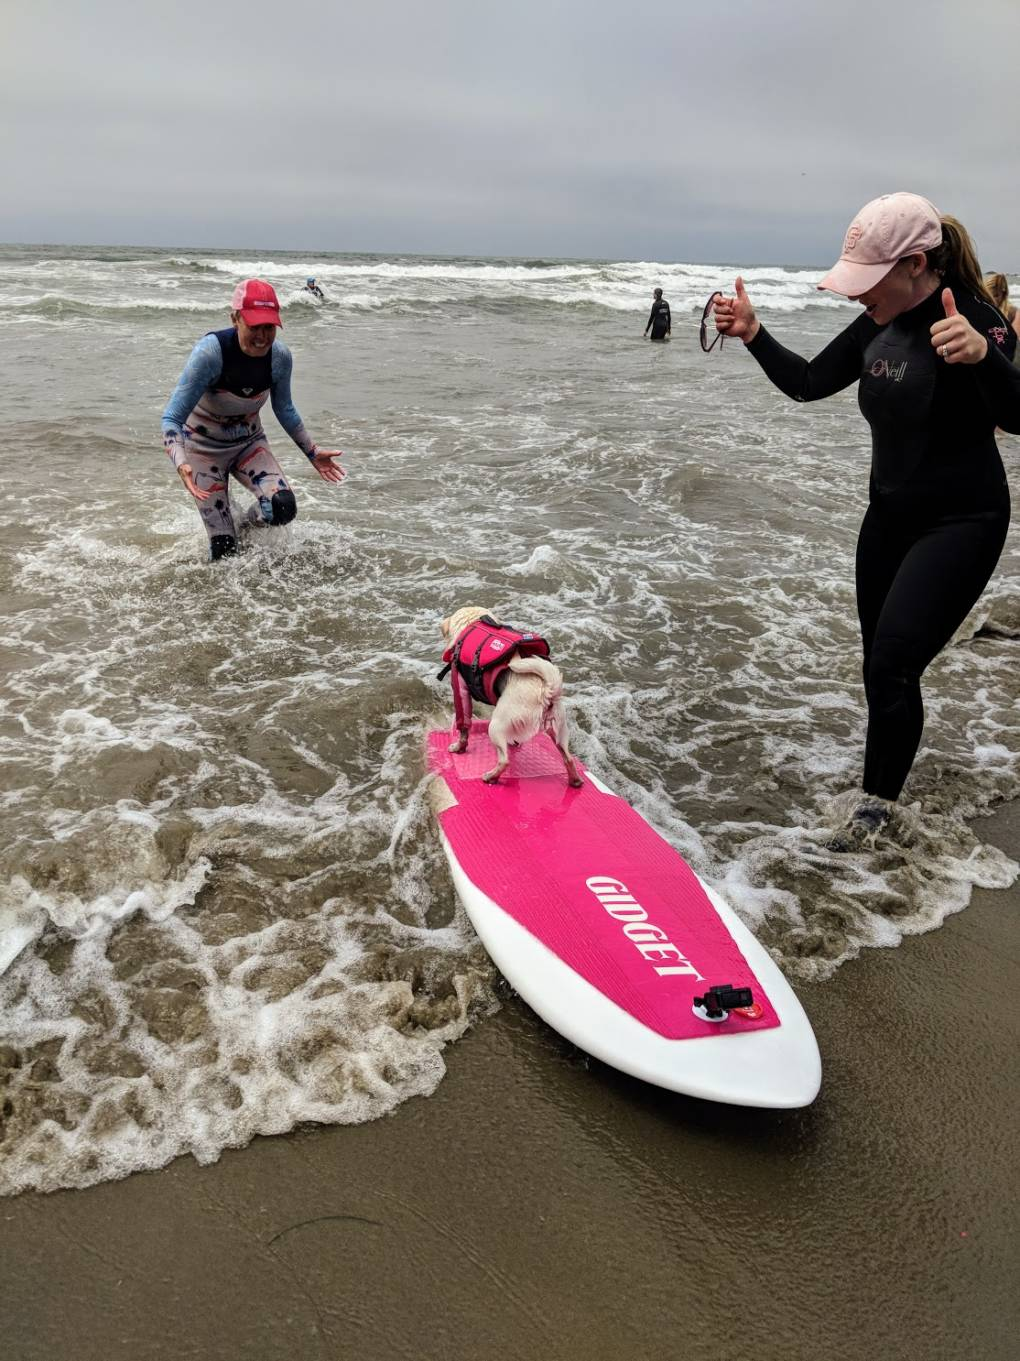 Gidget the pug gets the thumbs-up after a spectacular run in the final surf-off event.